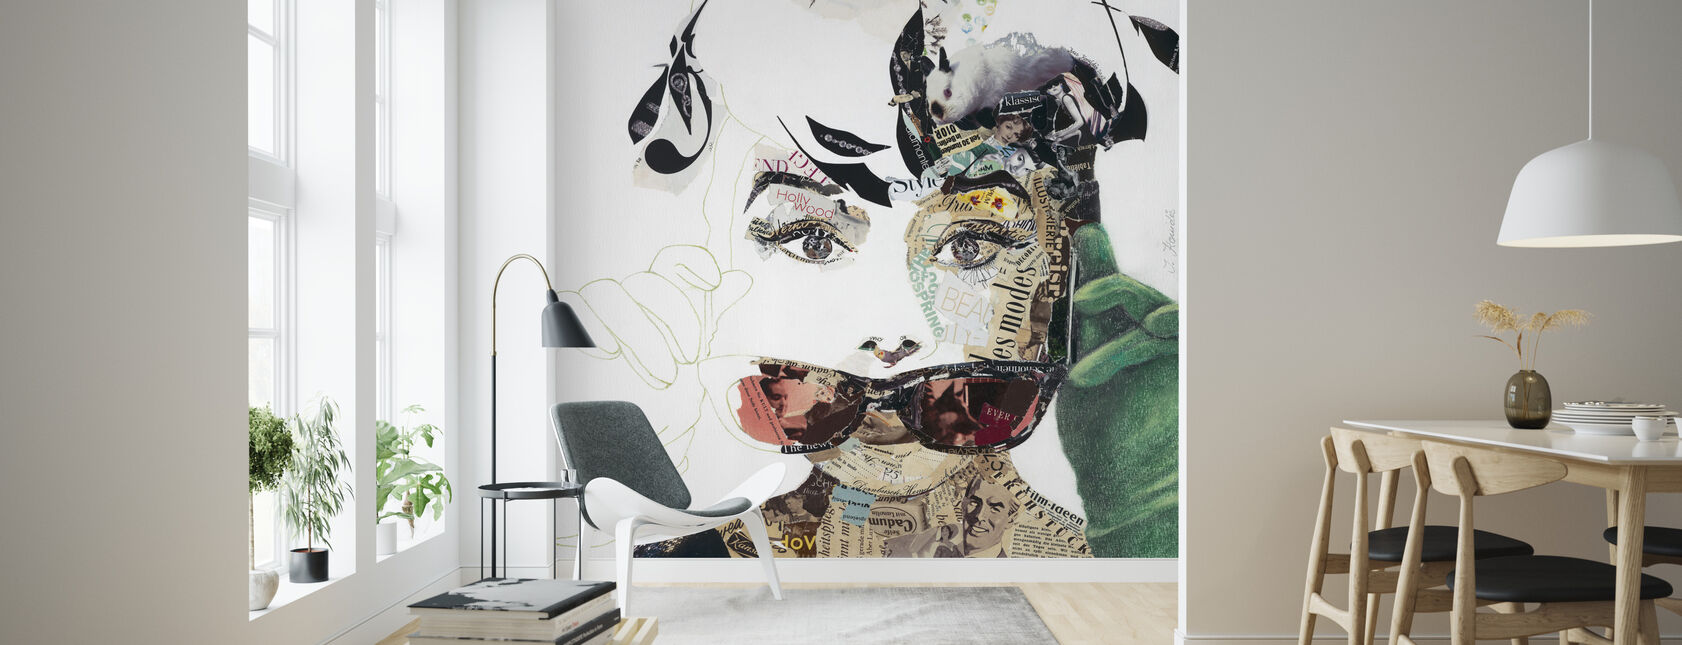 Breakfast at Tiffany's - Collage - Wallpaper - Living Room